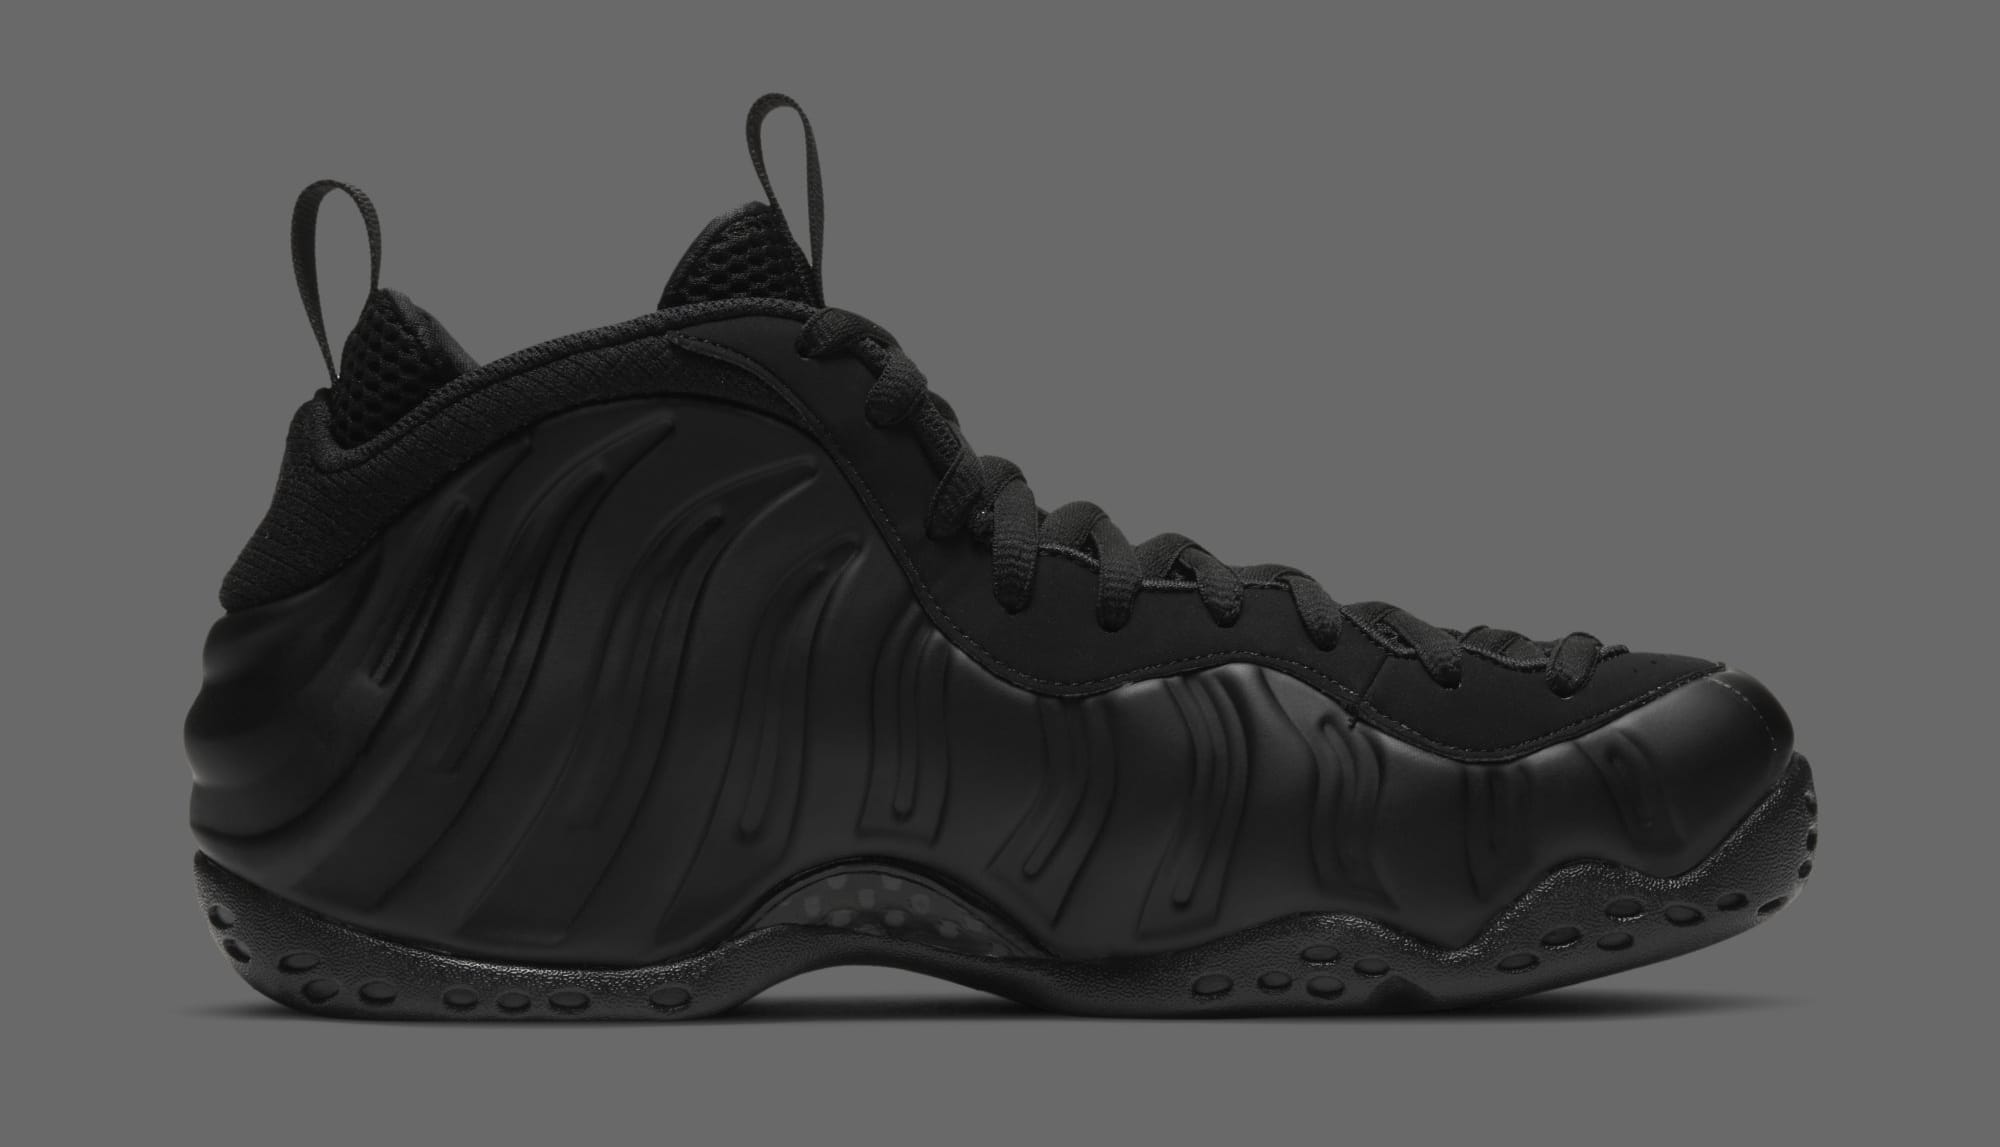 Nike Air Foamposite One 'Anthracite' 314996-001 Medial